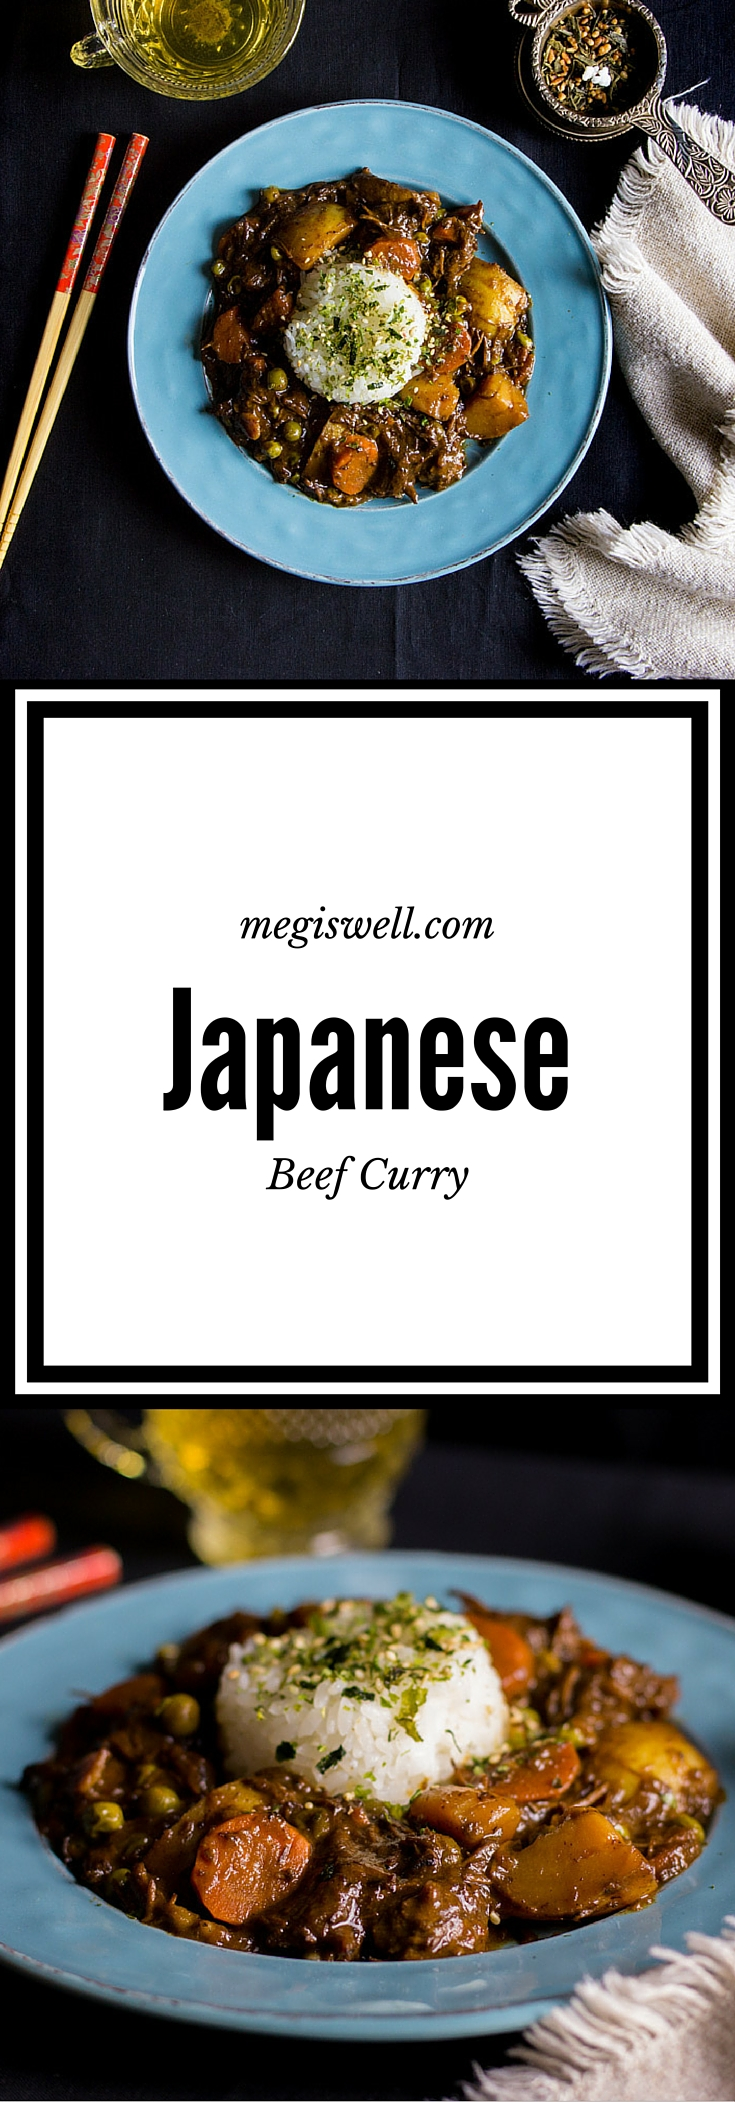 Beef chuck, onions, carrots, Yukon Gold potatoes, apple, and peas slowly simmered in beef stock and warming curry spices creates, from scratch, an amazing Japanese Beef Curry that is totally worth the wait.